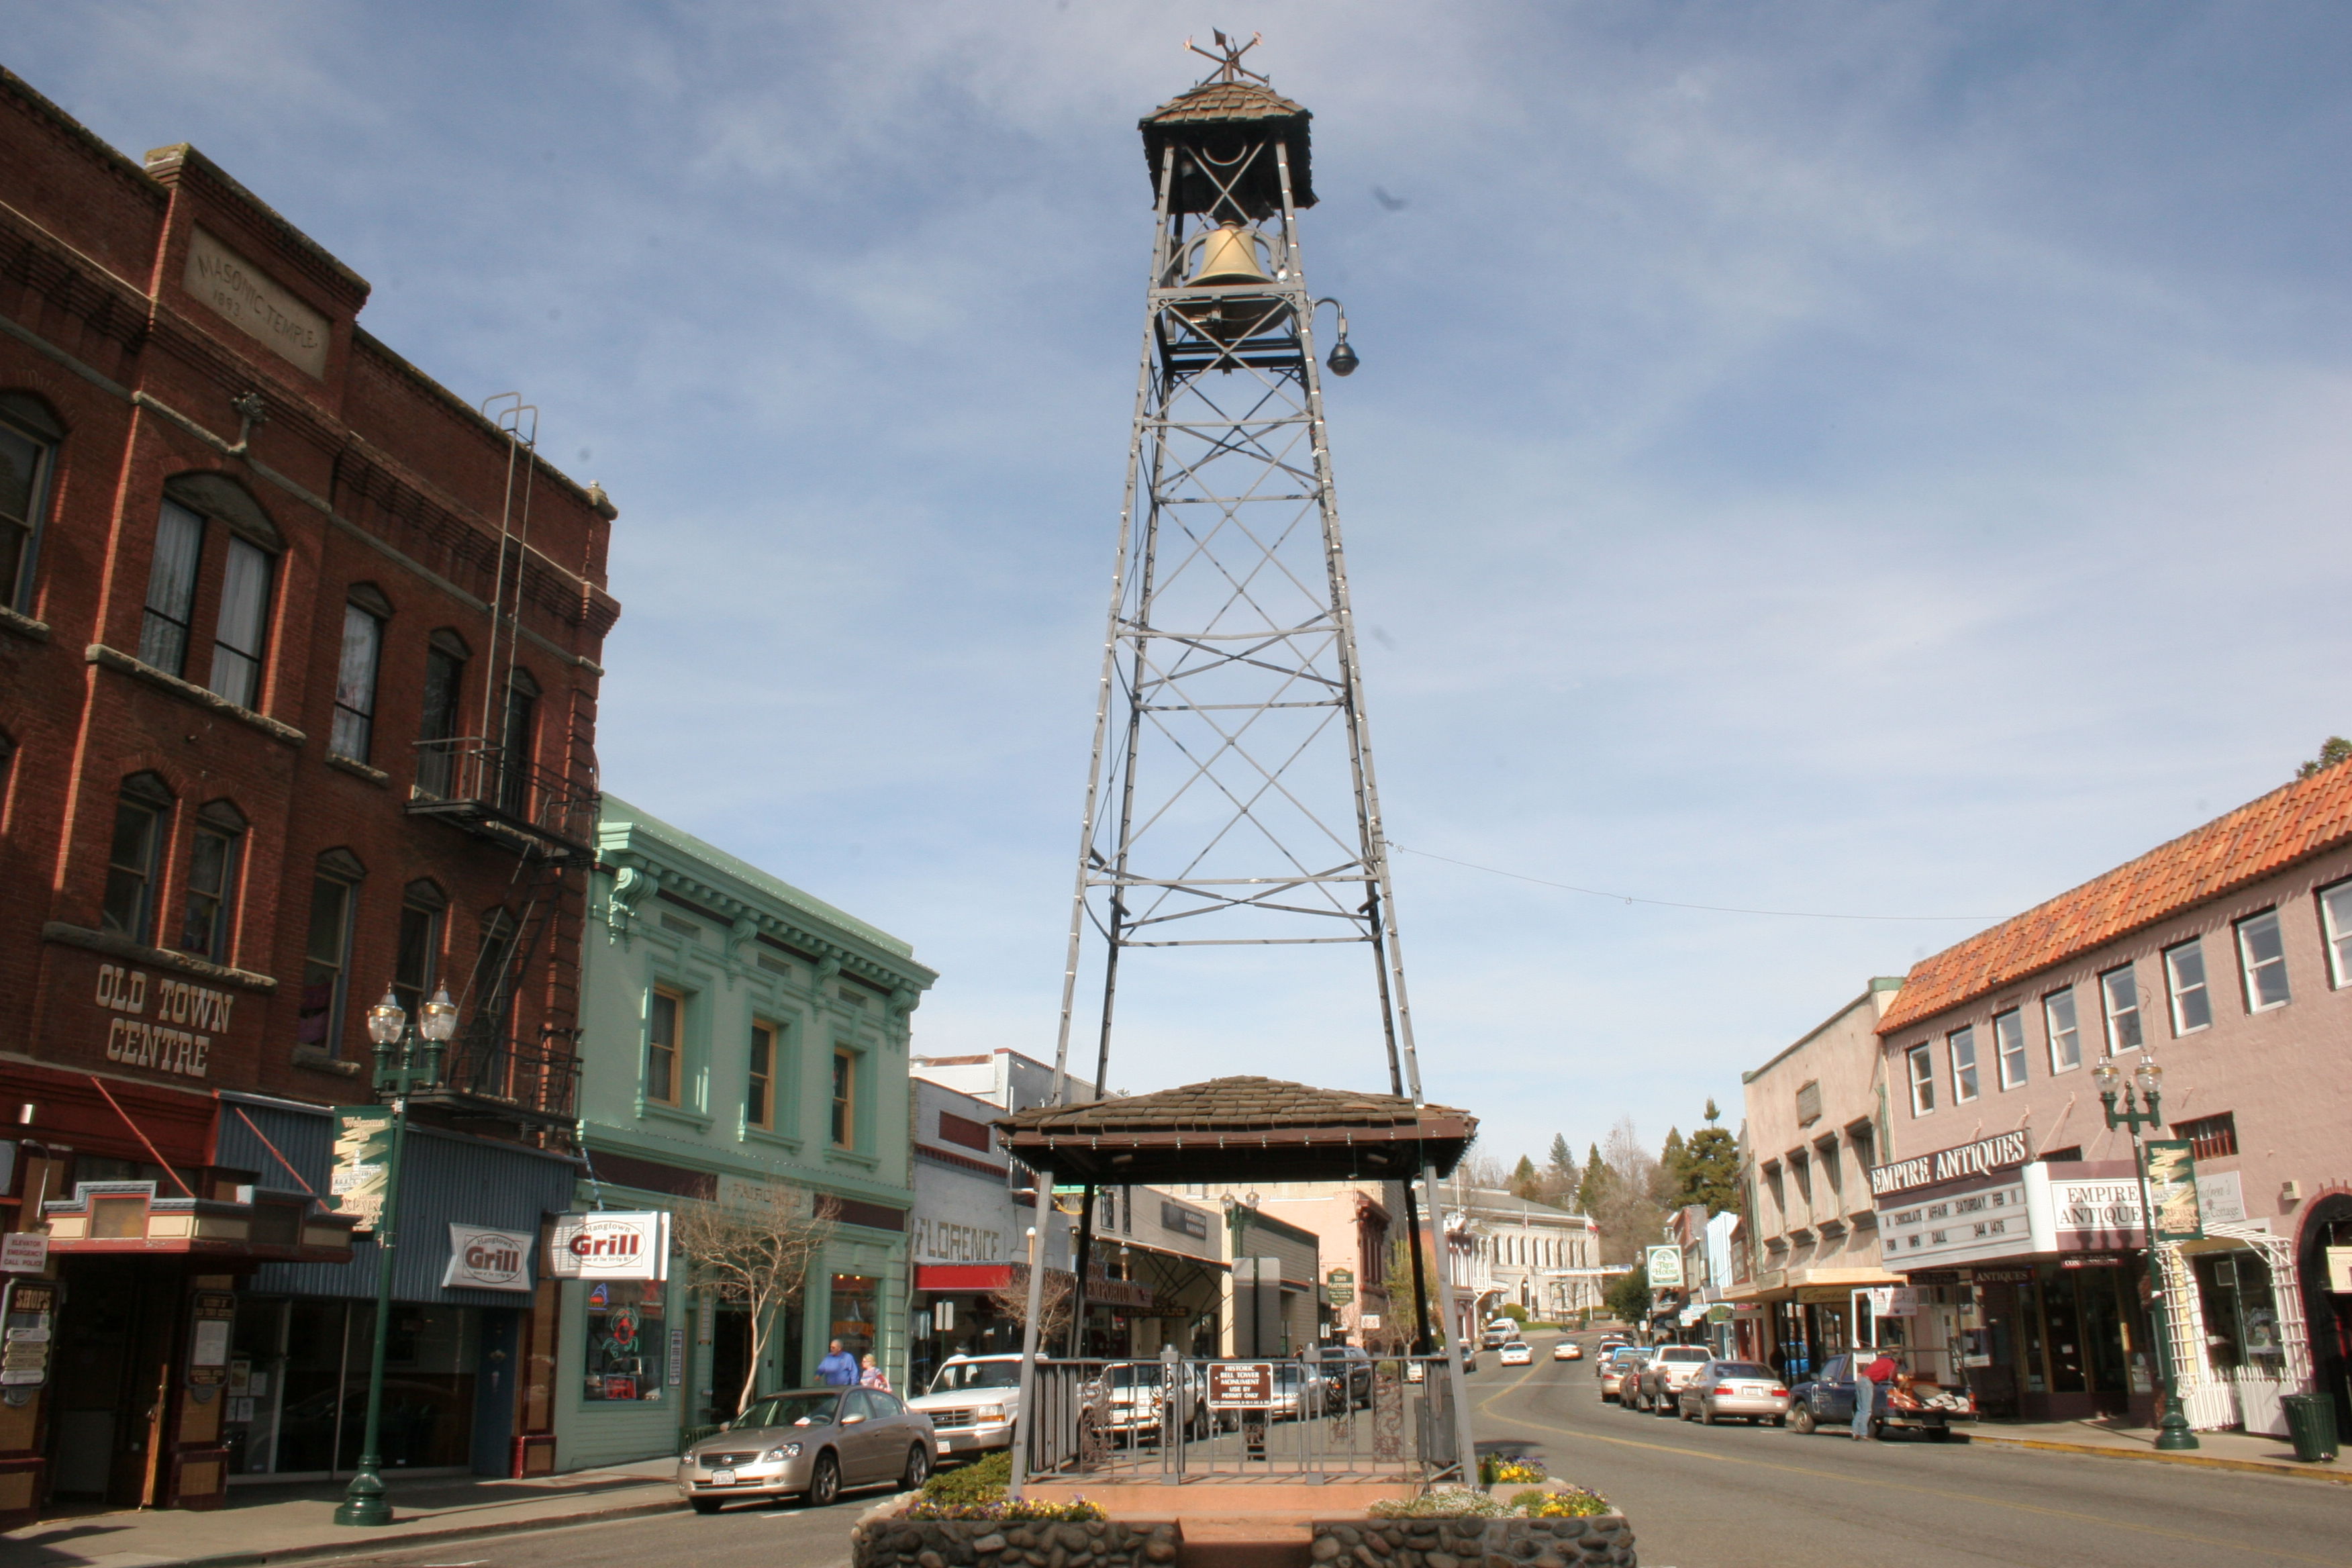 https://upload.wikimedia.org/wikipedia/commons/c/ce/Placerville_CA_Bell.JPG